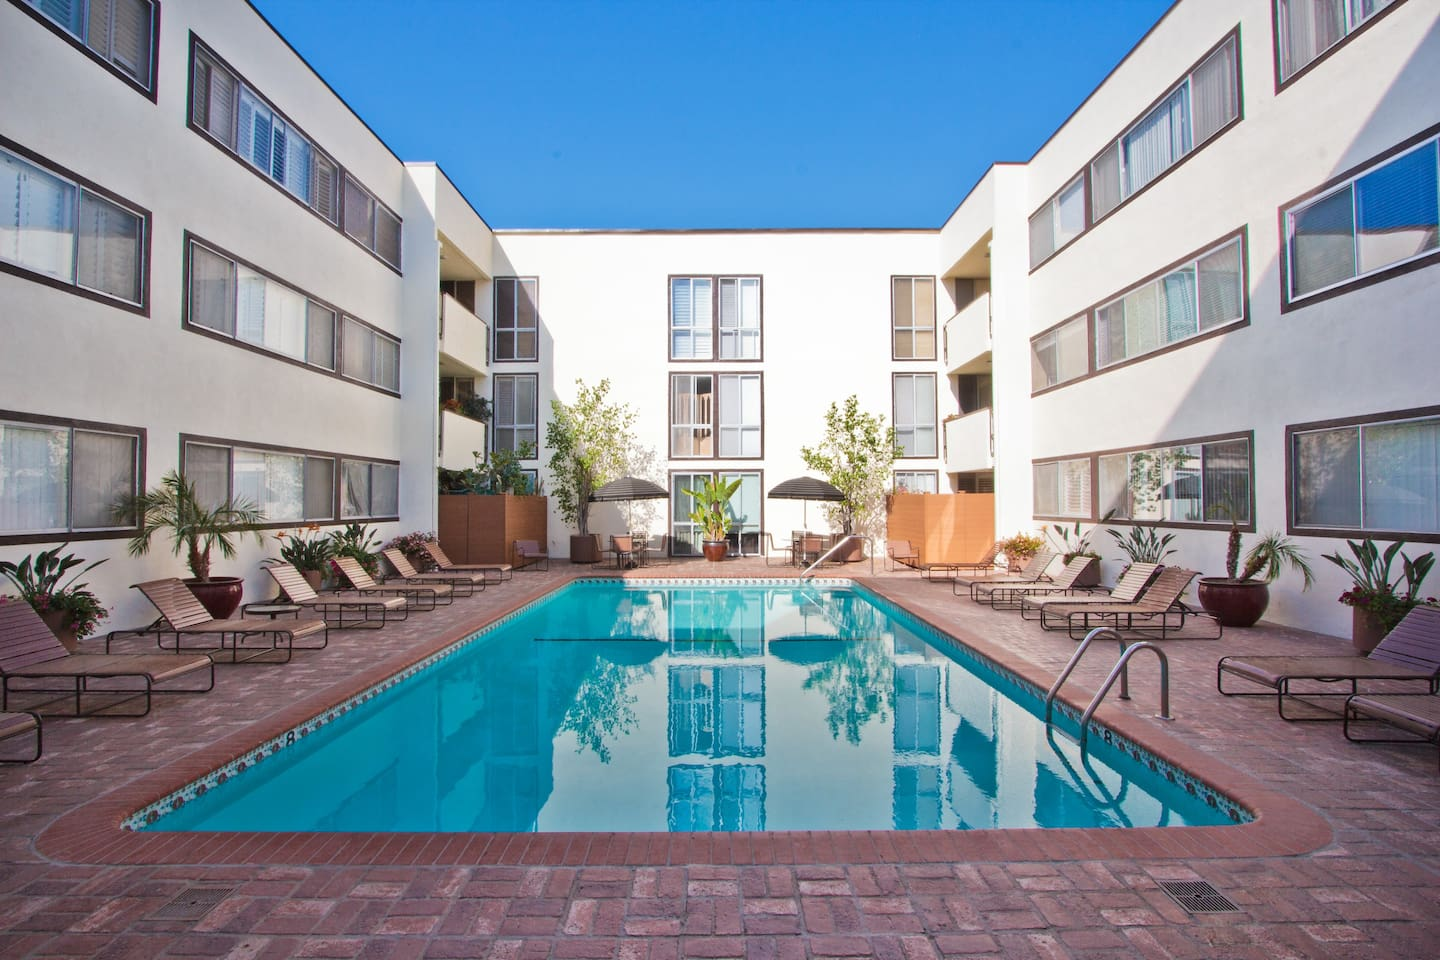 Overlooking pool and private patio-- unit is on the second floor